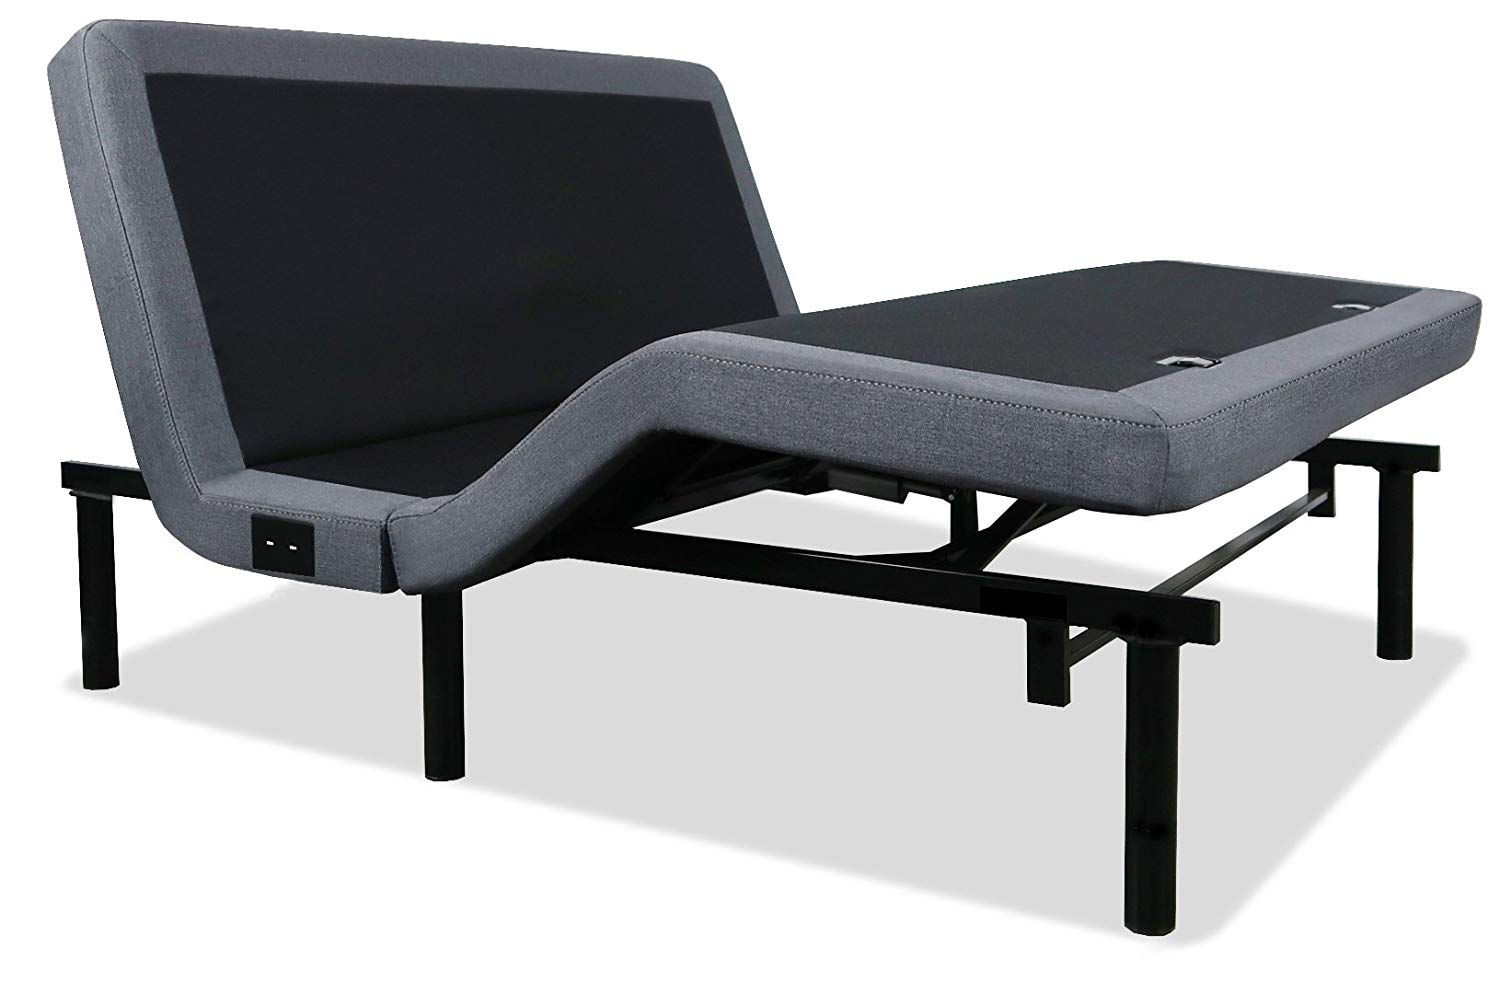 Adjustable Beds Electric The Best Adjustable Beds More Than Just A Fun Idea